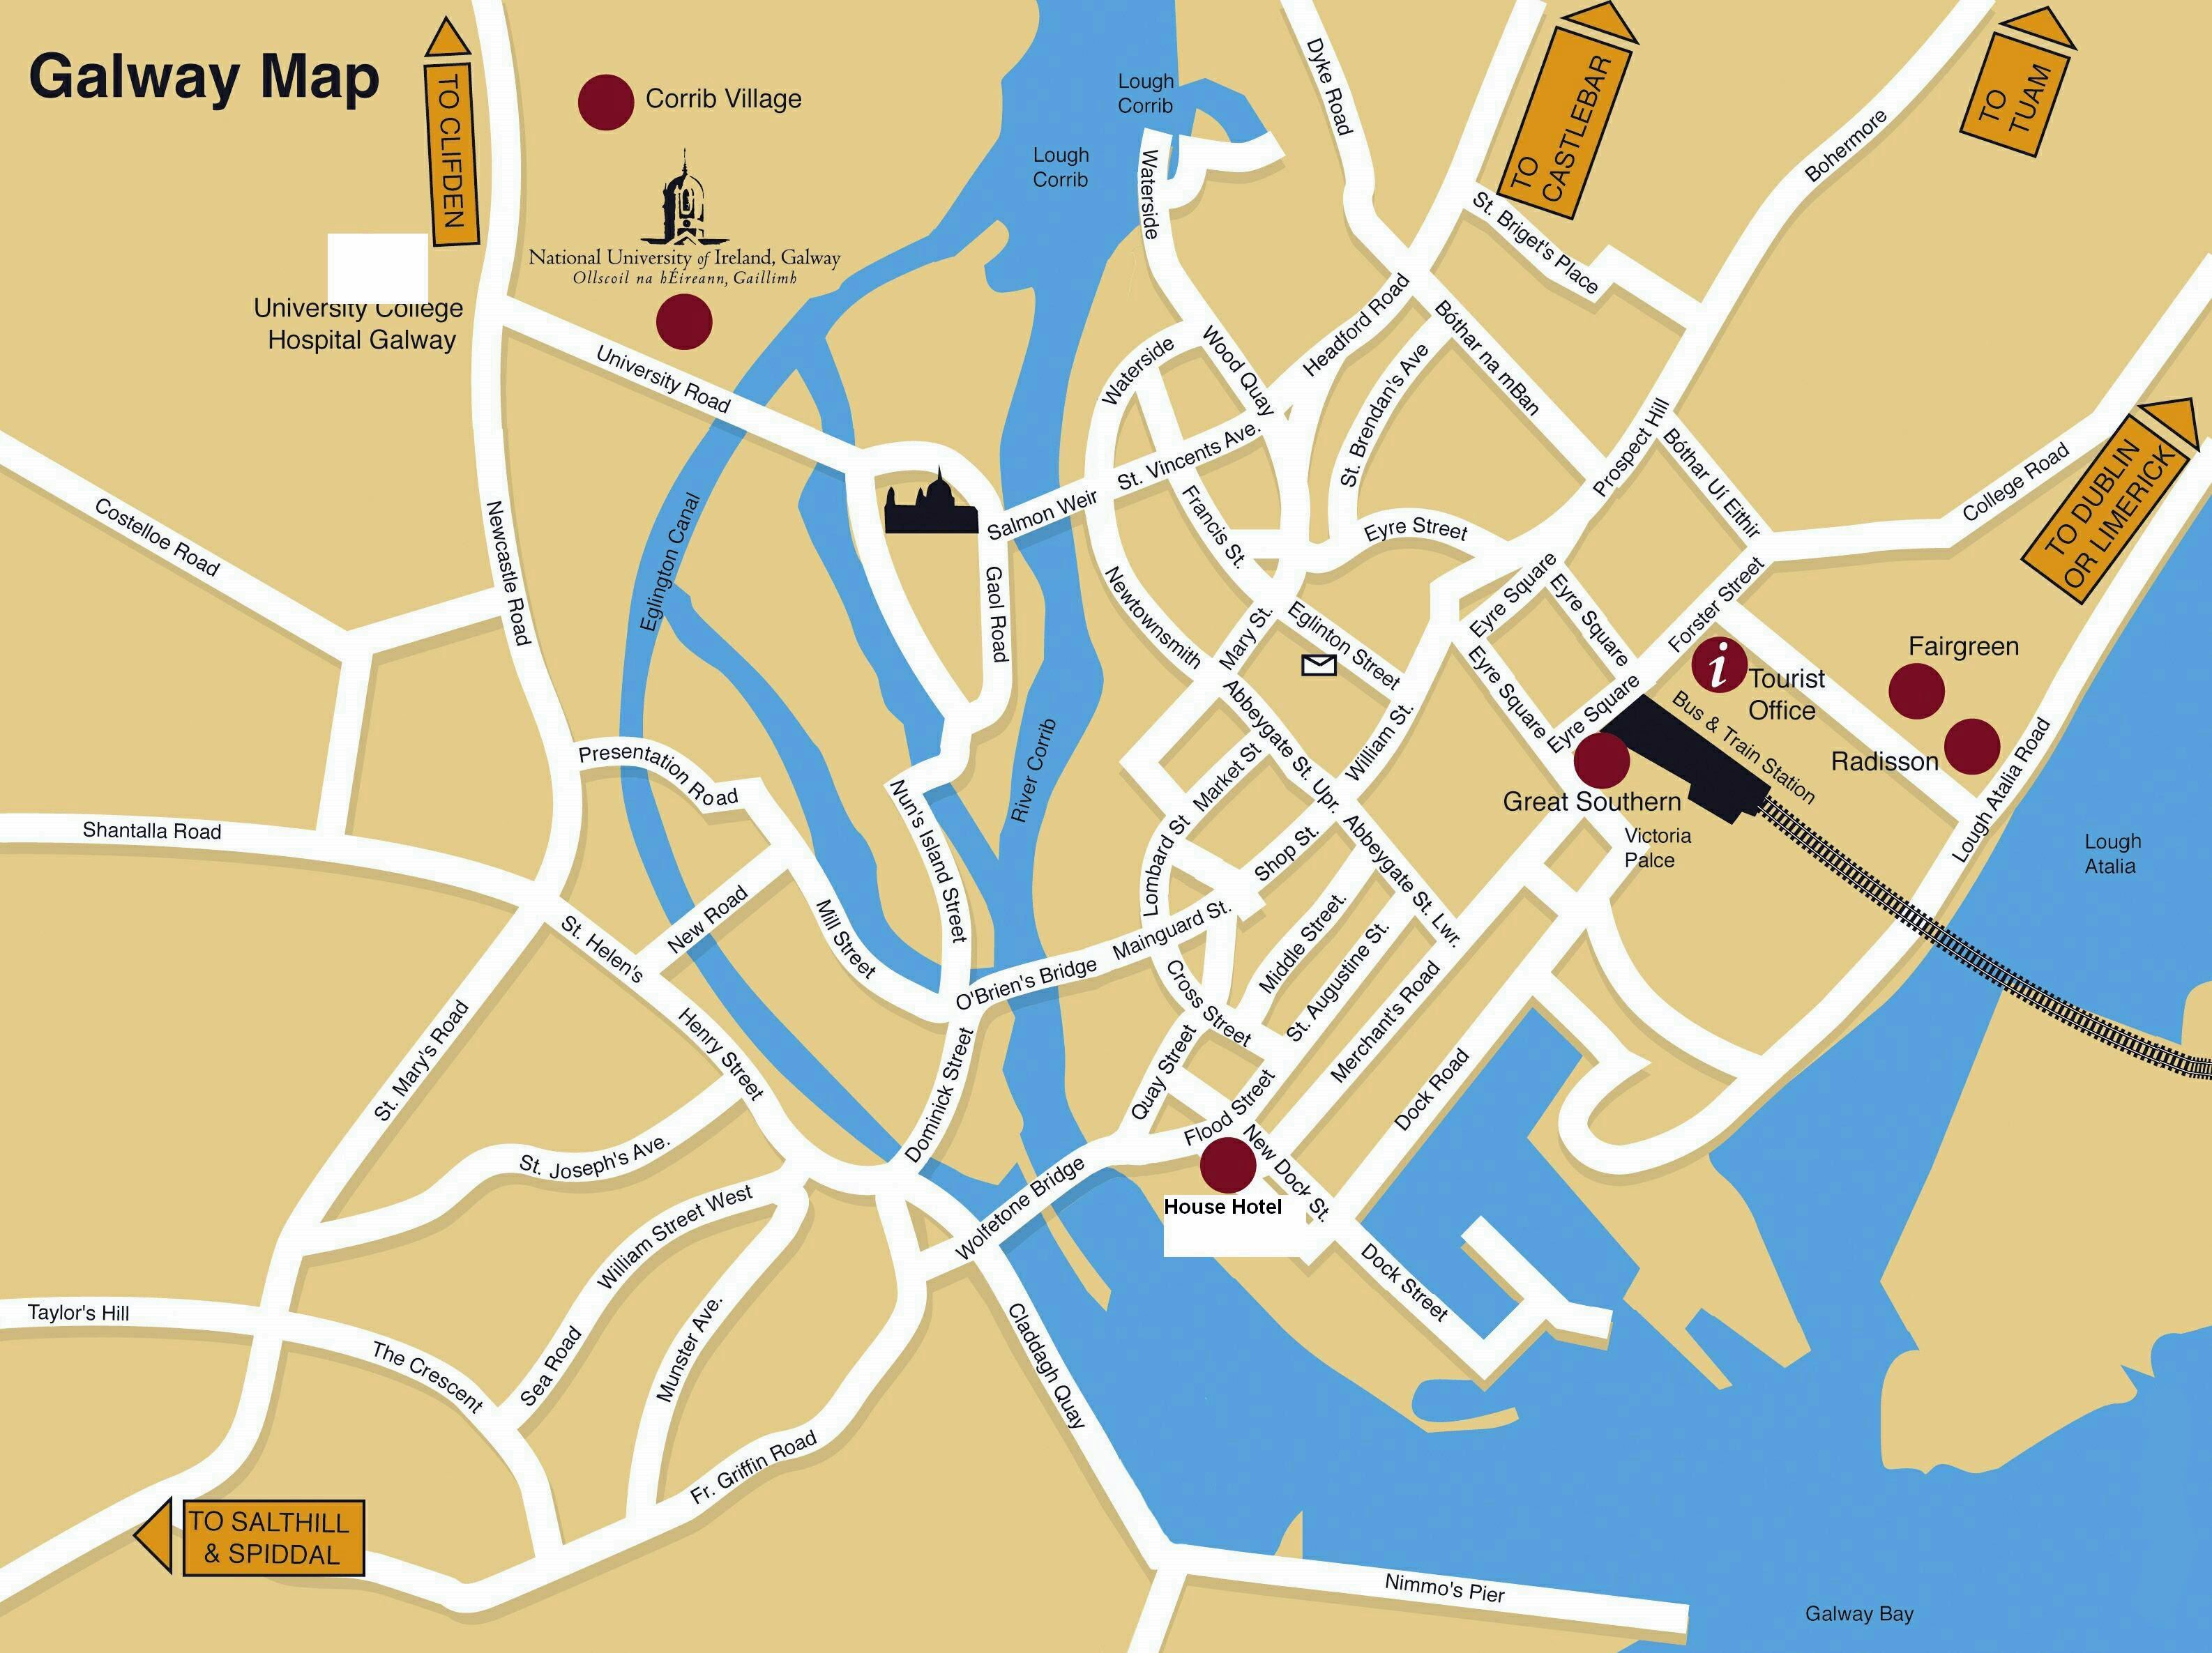 Large Galway Maps for Free Download and Print | High ... on street map of hudson falls, street map of norwich, street map of cleveland, street map of birmingham, street map of boston, street map of florence, street map of exeter, street map of dundalk, street map of worcester, street map of ulster, street map of manchester, street map of york, street map of nassau, street map of barcelona, street map of rome, street map of oughterard, street map of dublin, street map of liverpool, street map of saratoga, street map of london,